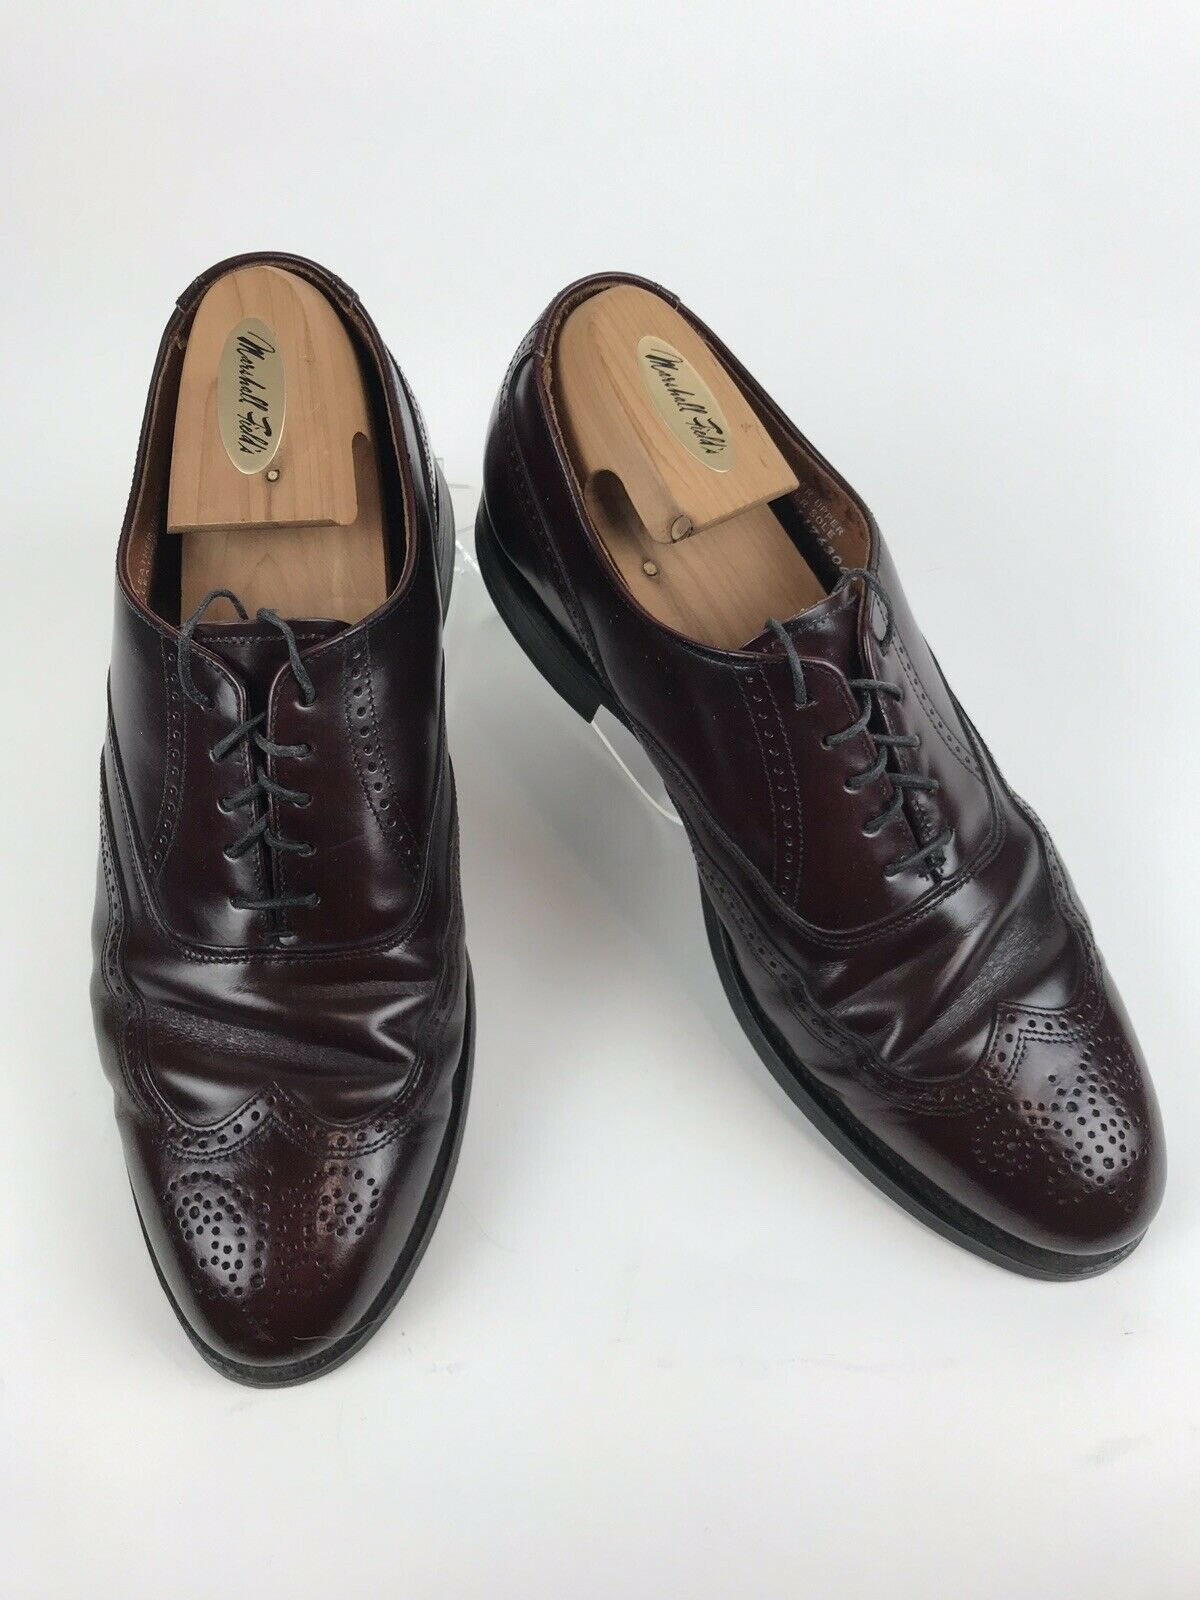 STAFFORD Comfort Plus Mens 10.5 E C Burgundy Leather Wingtip Brogue Oxford shoes